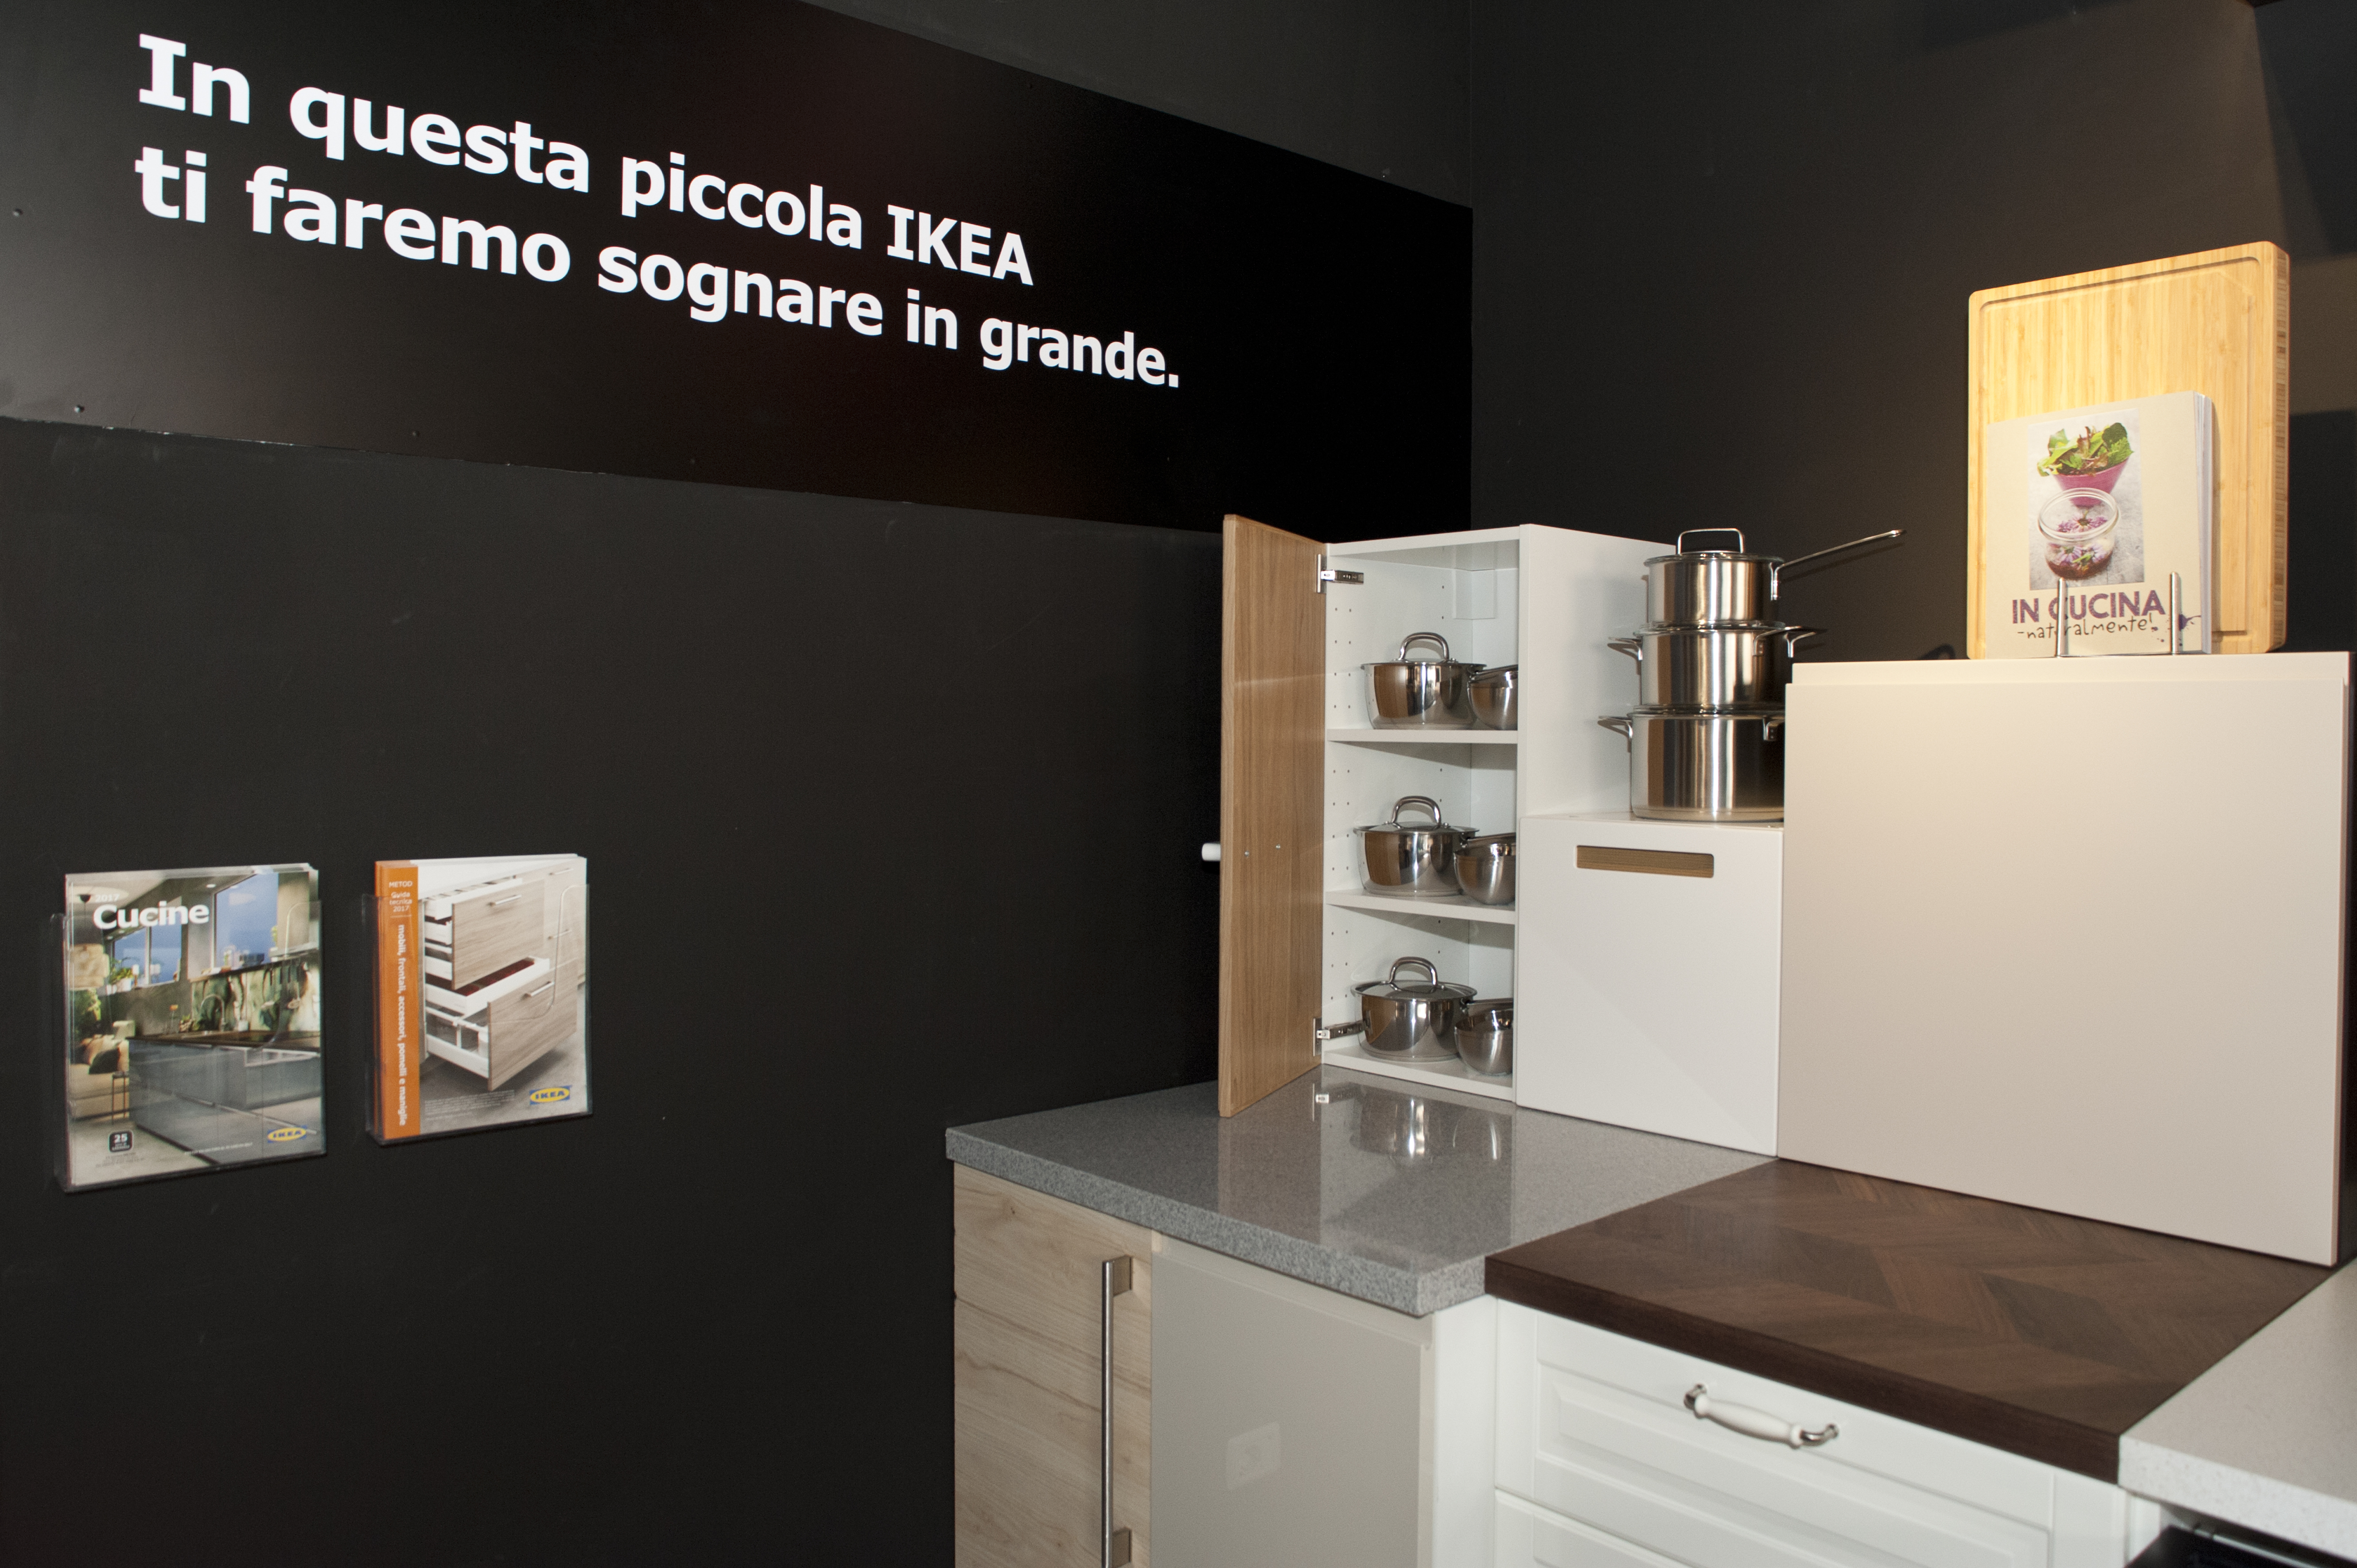 Ikea-Pop-Up Store-Roma-01